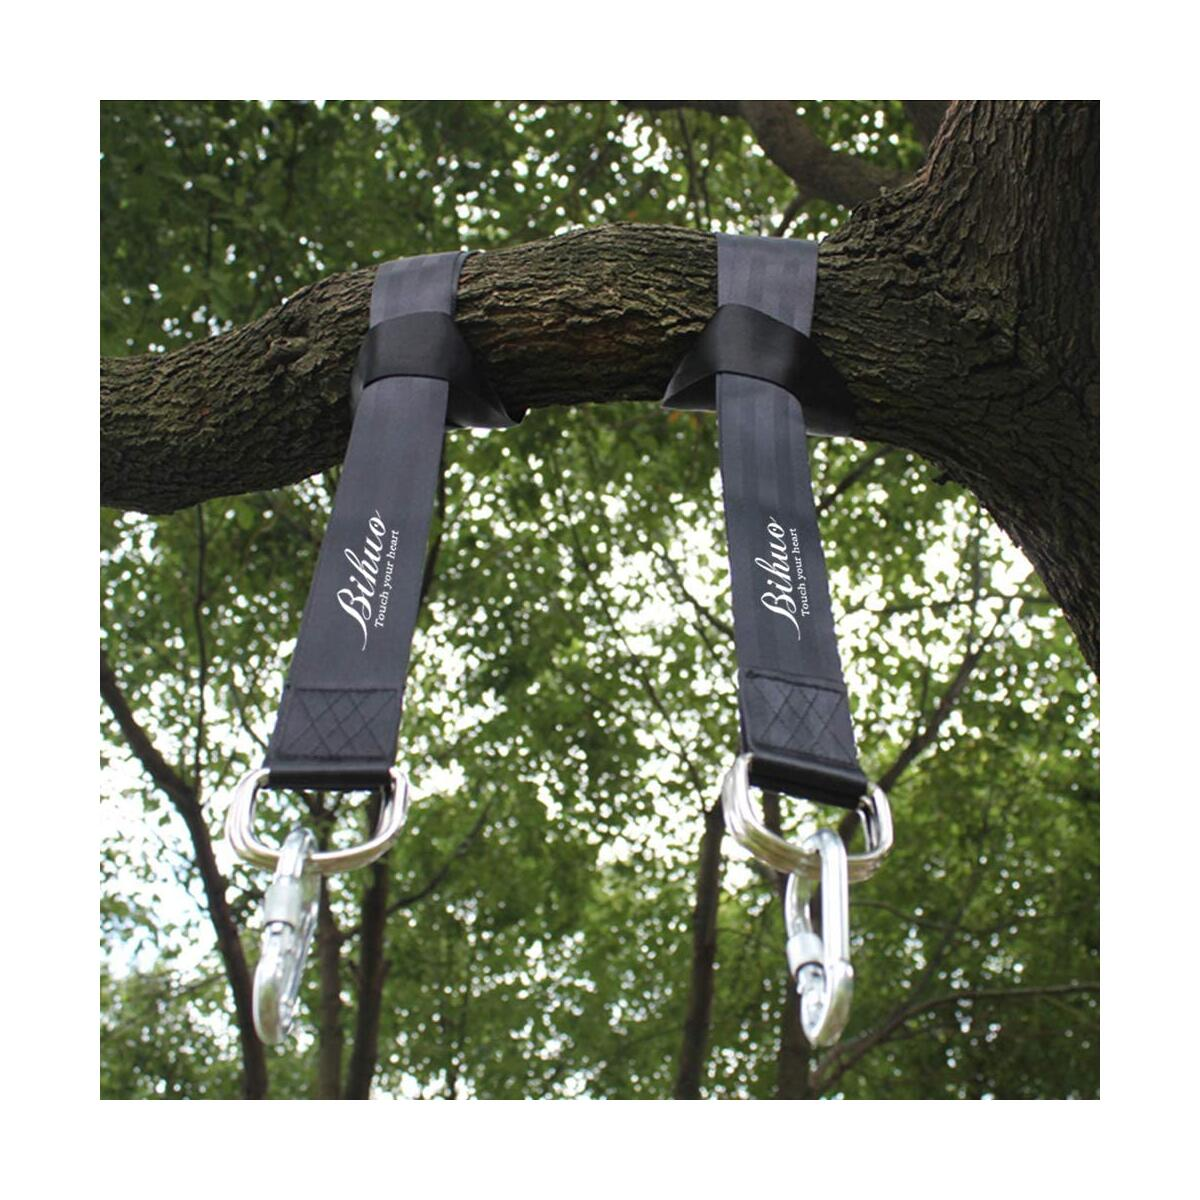 Tree Swing Hanging Straps Kit - Holds 2000 lbs, 5ft Long Straps with 2 Tree Protectors & 2 Safer Lock Snap Carabiner Hooks Perfect for Tree Swing & Hammocks, Perfect for Swings (4000 Lbs) (Black)